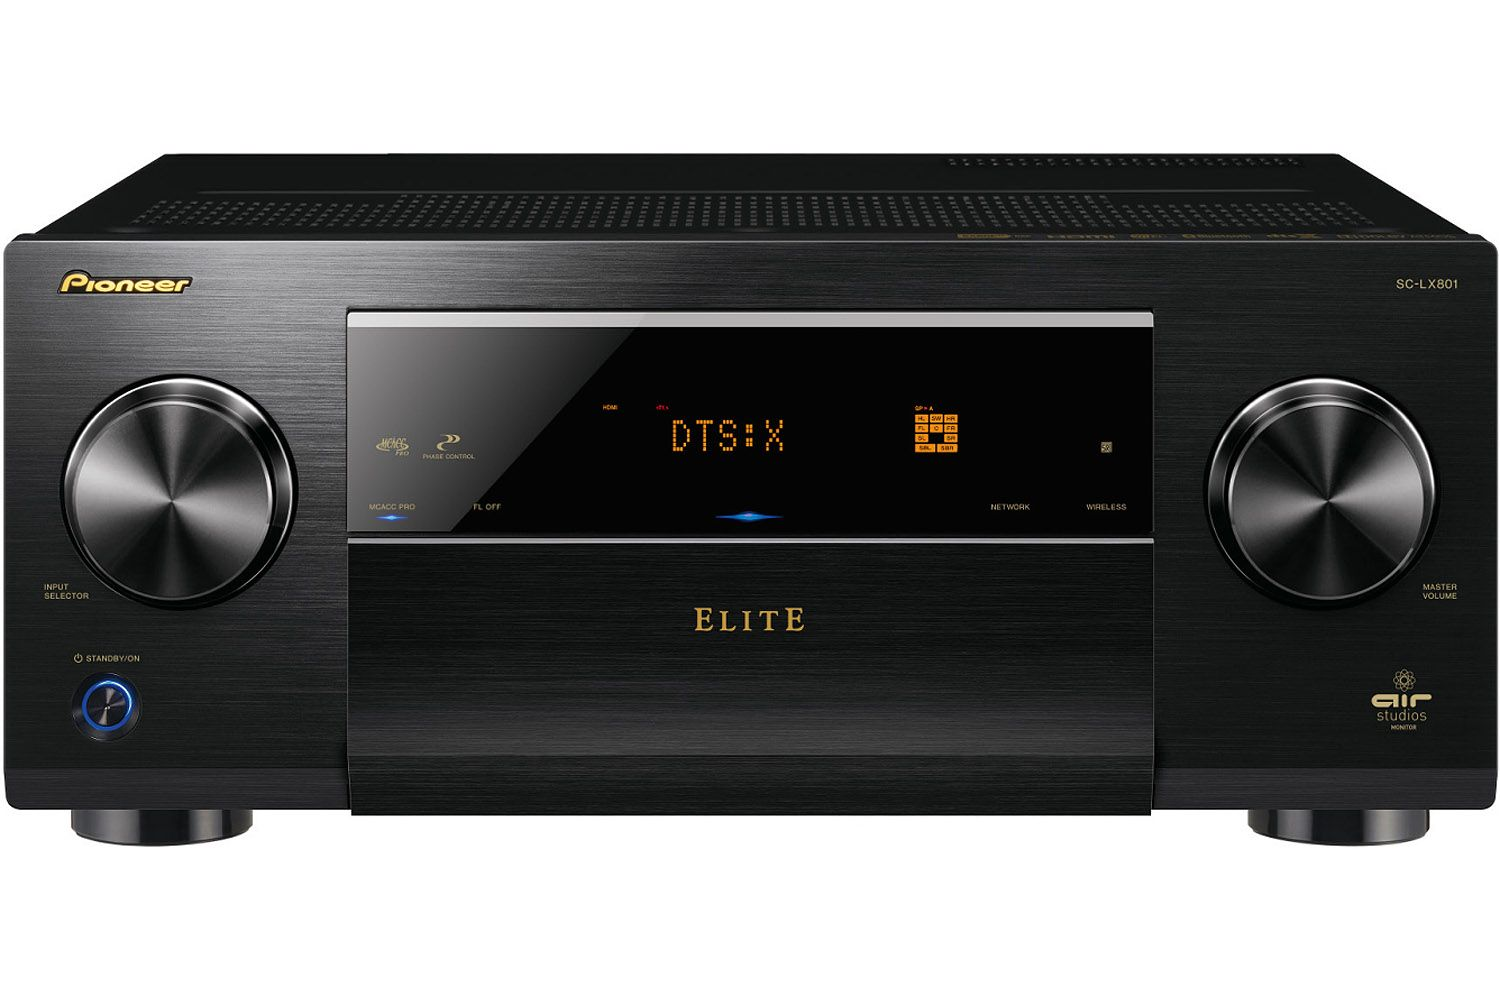 Pioneer Black 92 Channel Network Av Receiver Sc Lx801 How To Build Symmetrical Class A Preamplifier Elite D3